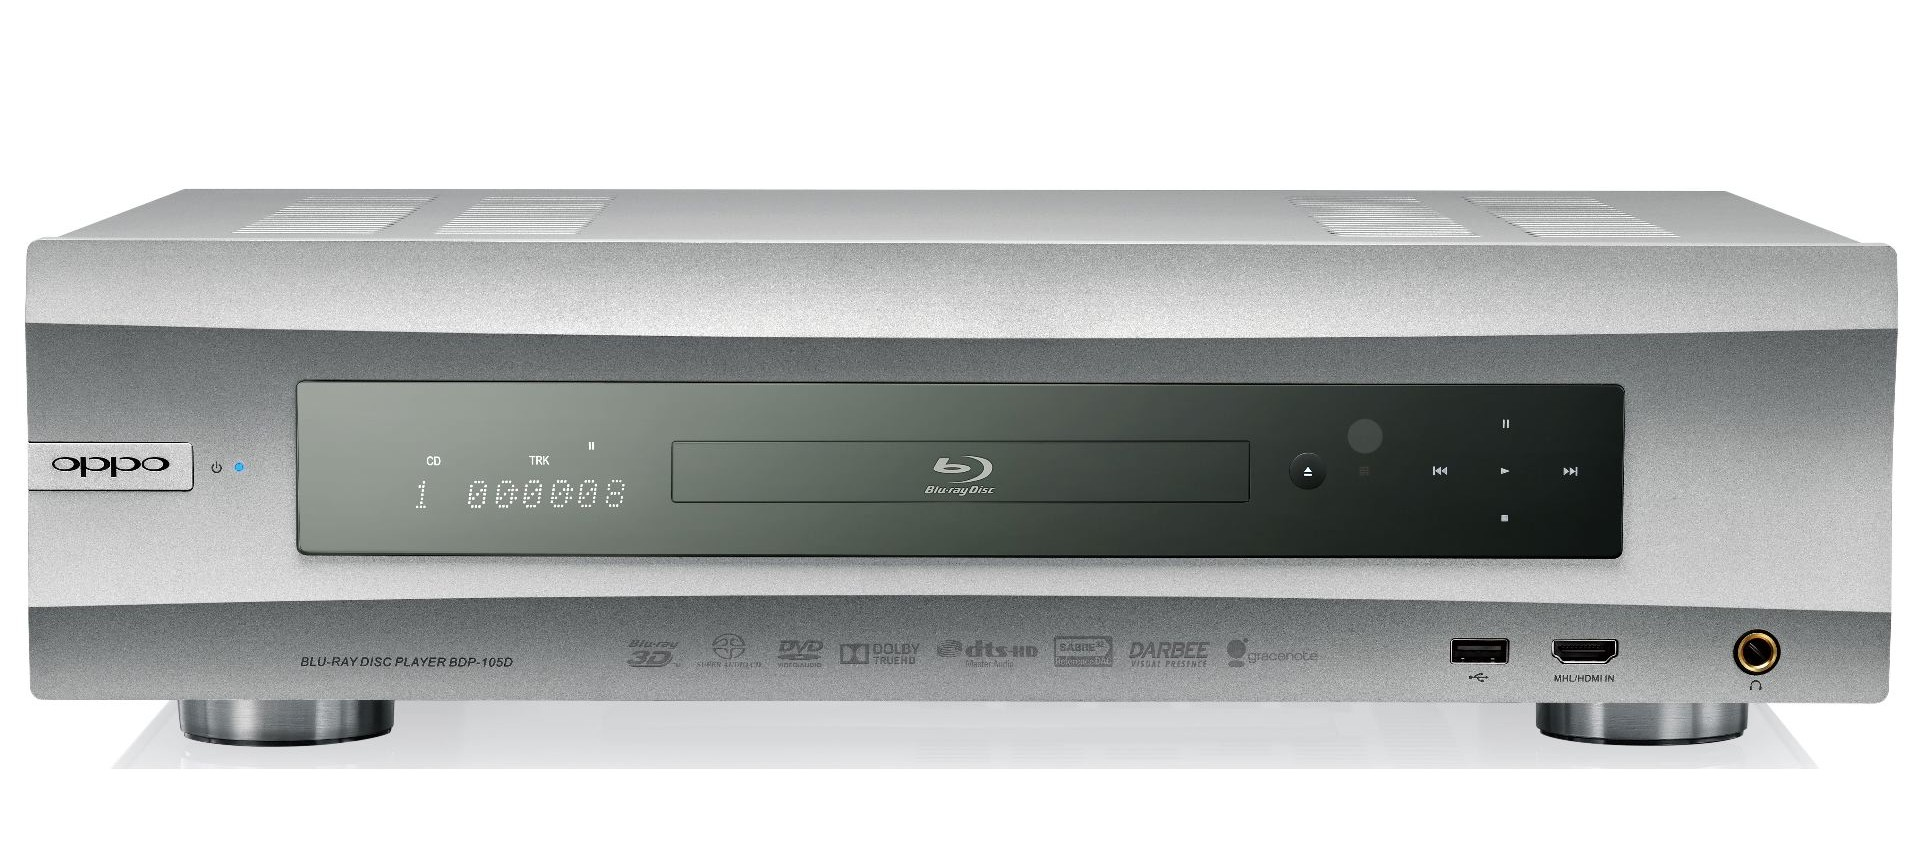 OPPO's BDP-105D. The Bluray player videophiles who will die for.